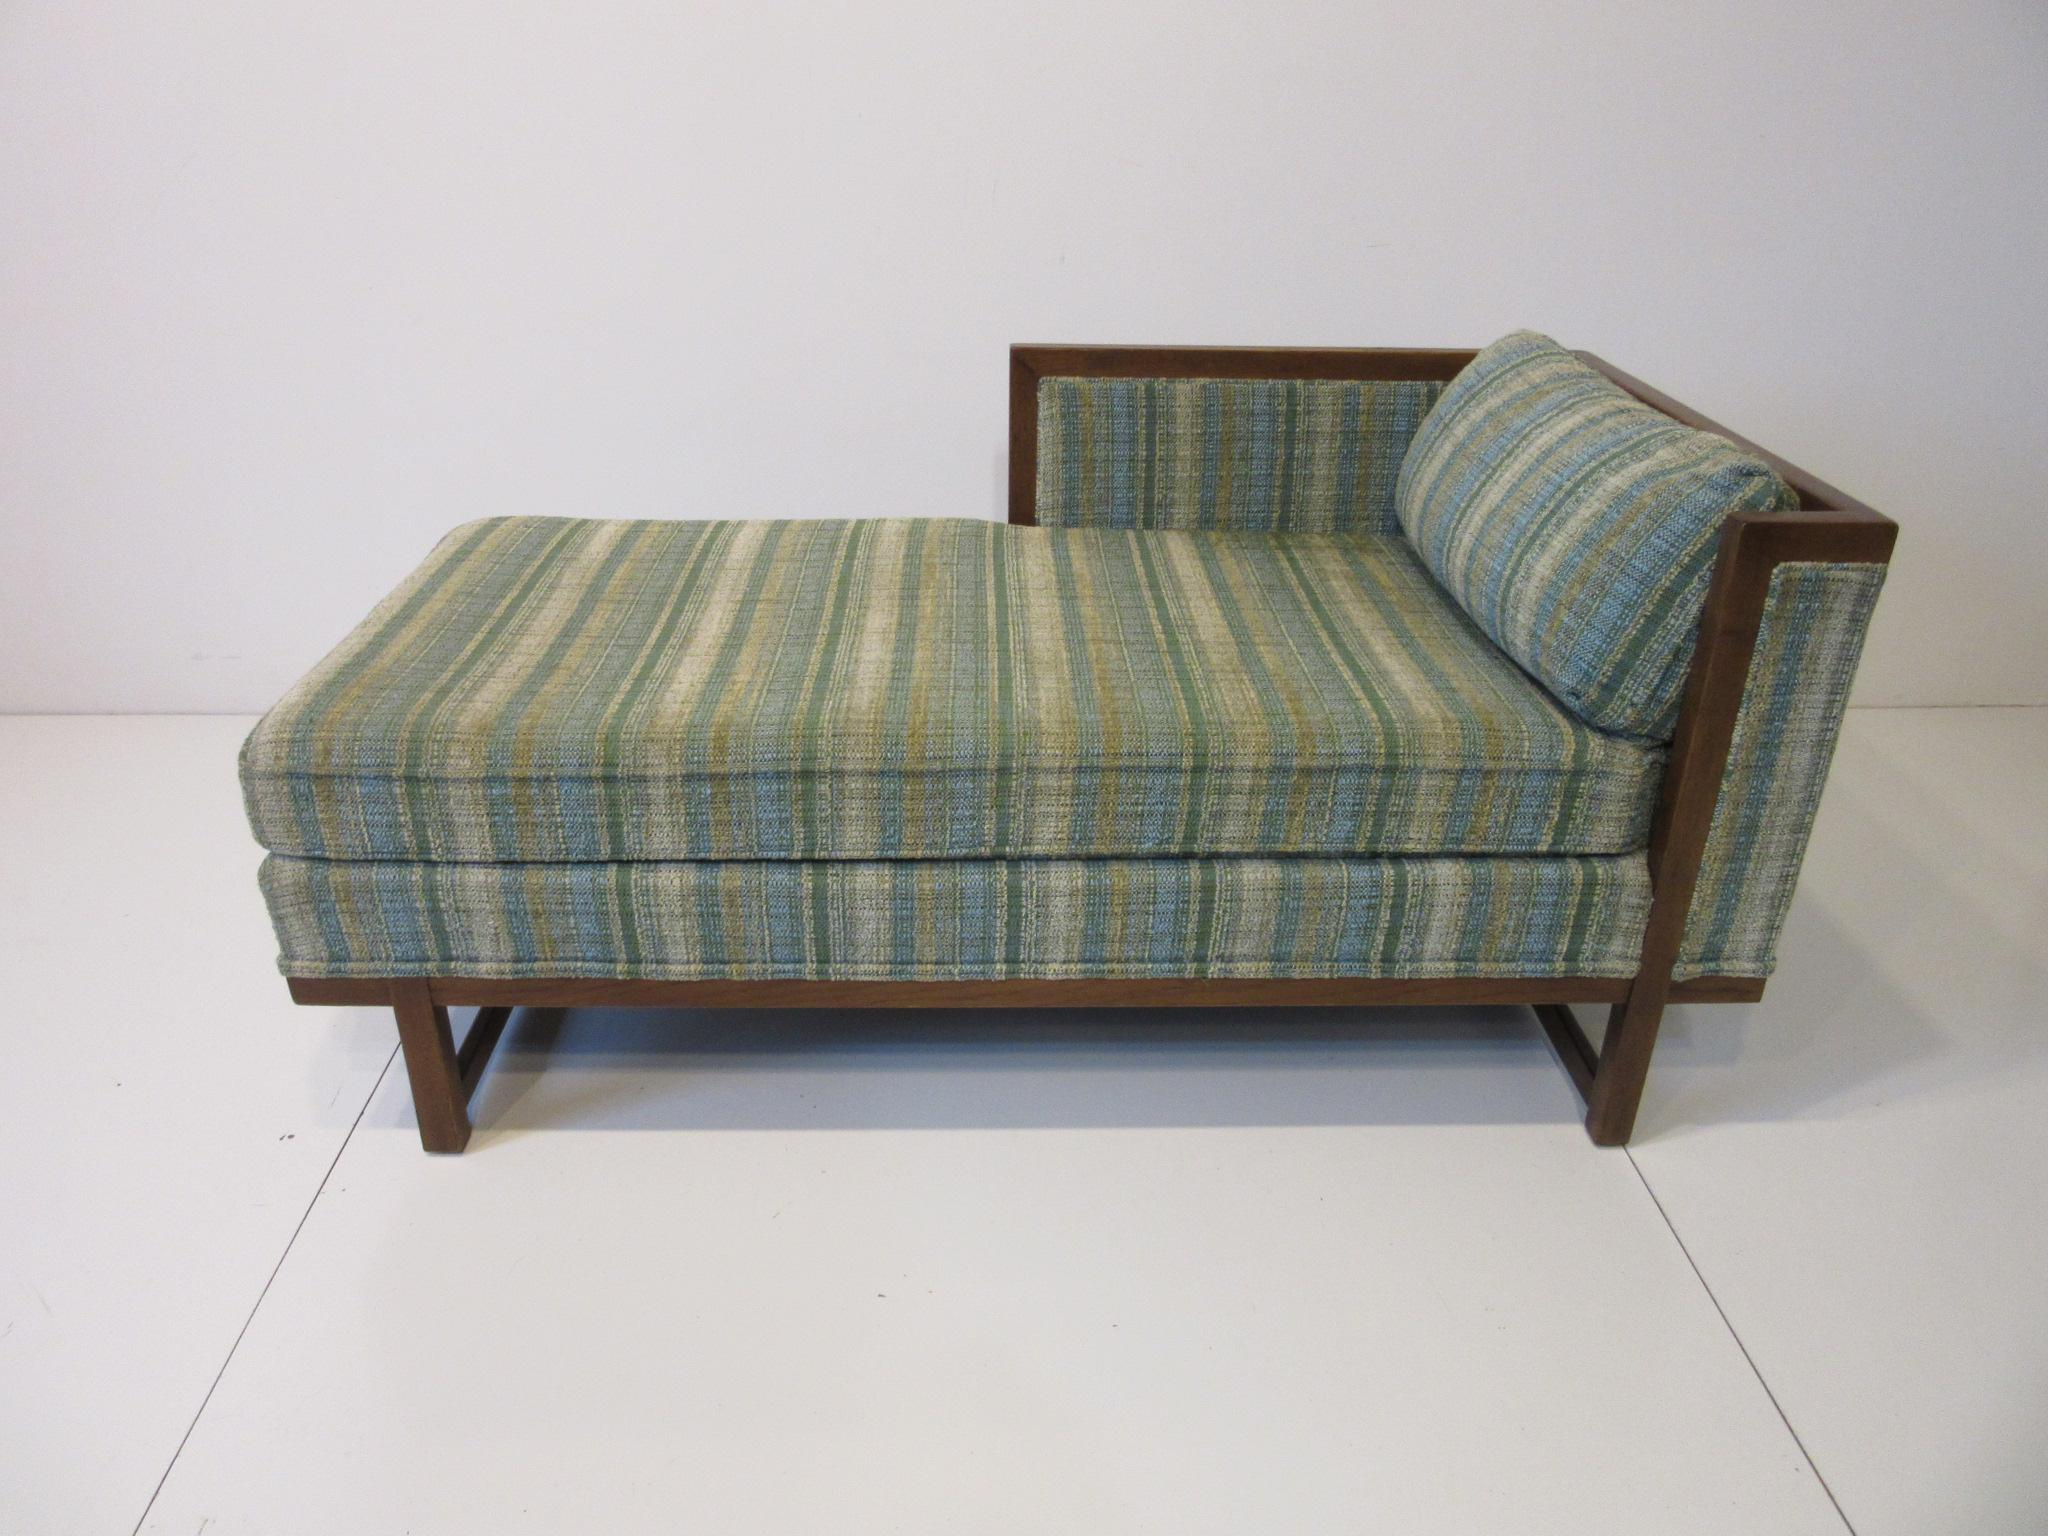 flair mid century chaise lounge chair by bernhardt